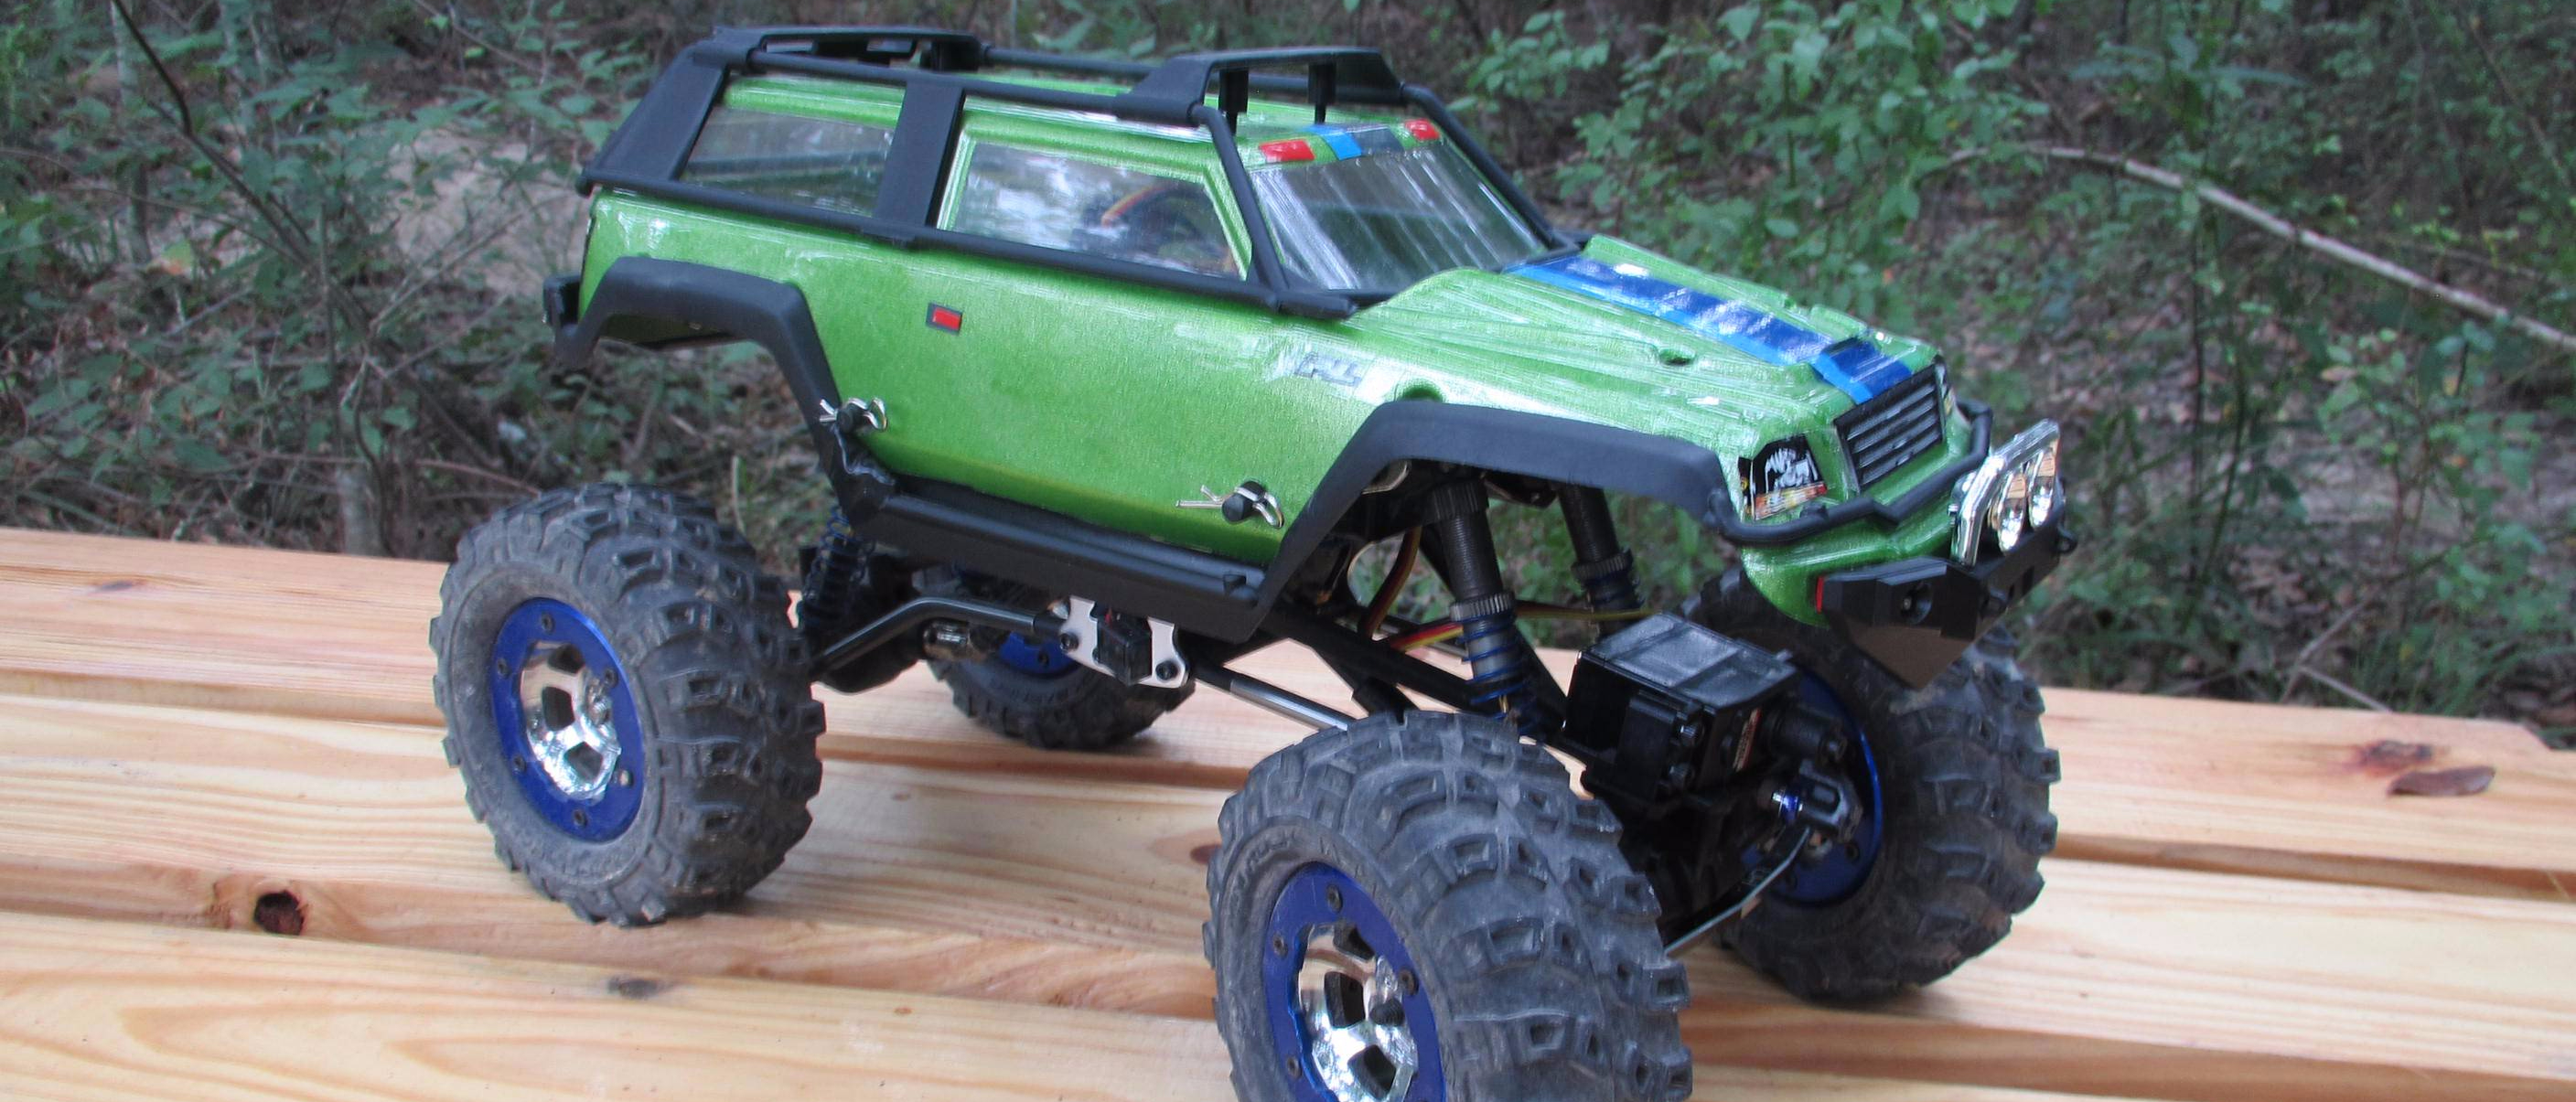 1/18-scale Losi Crawler